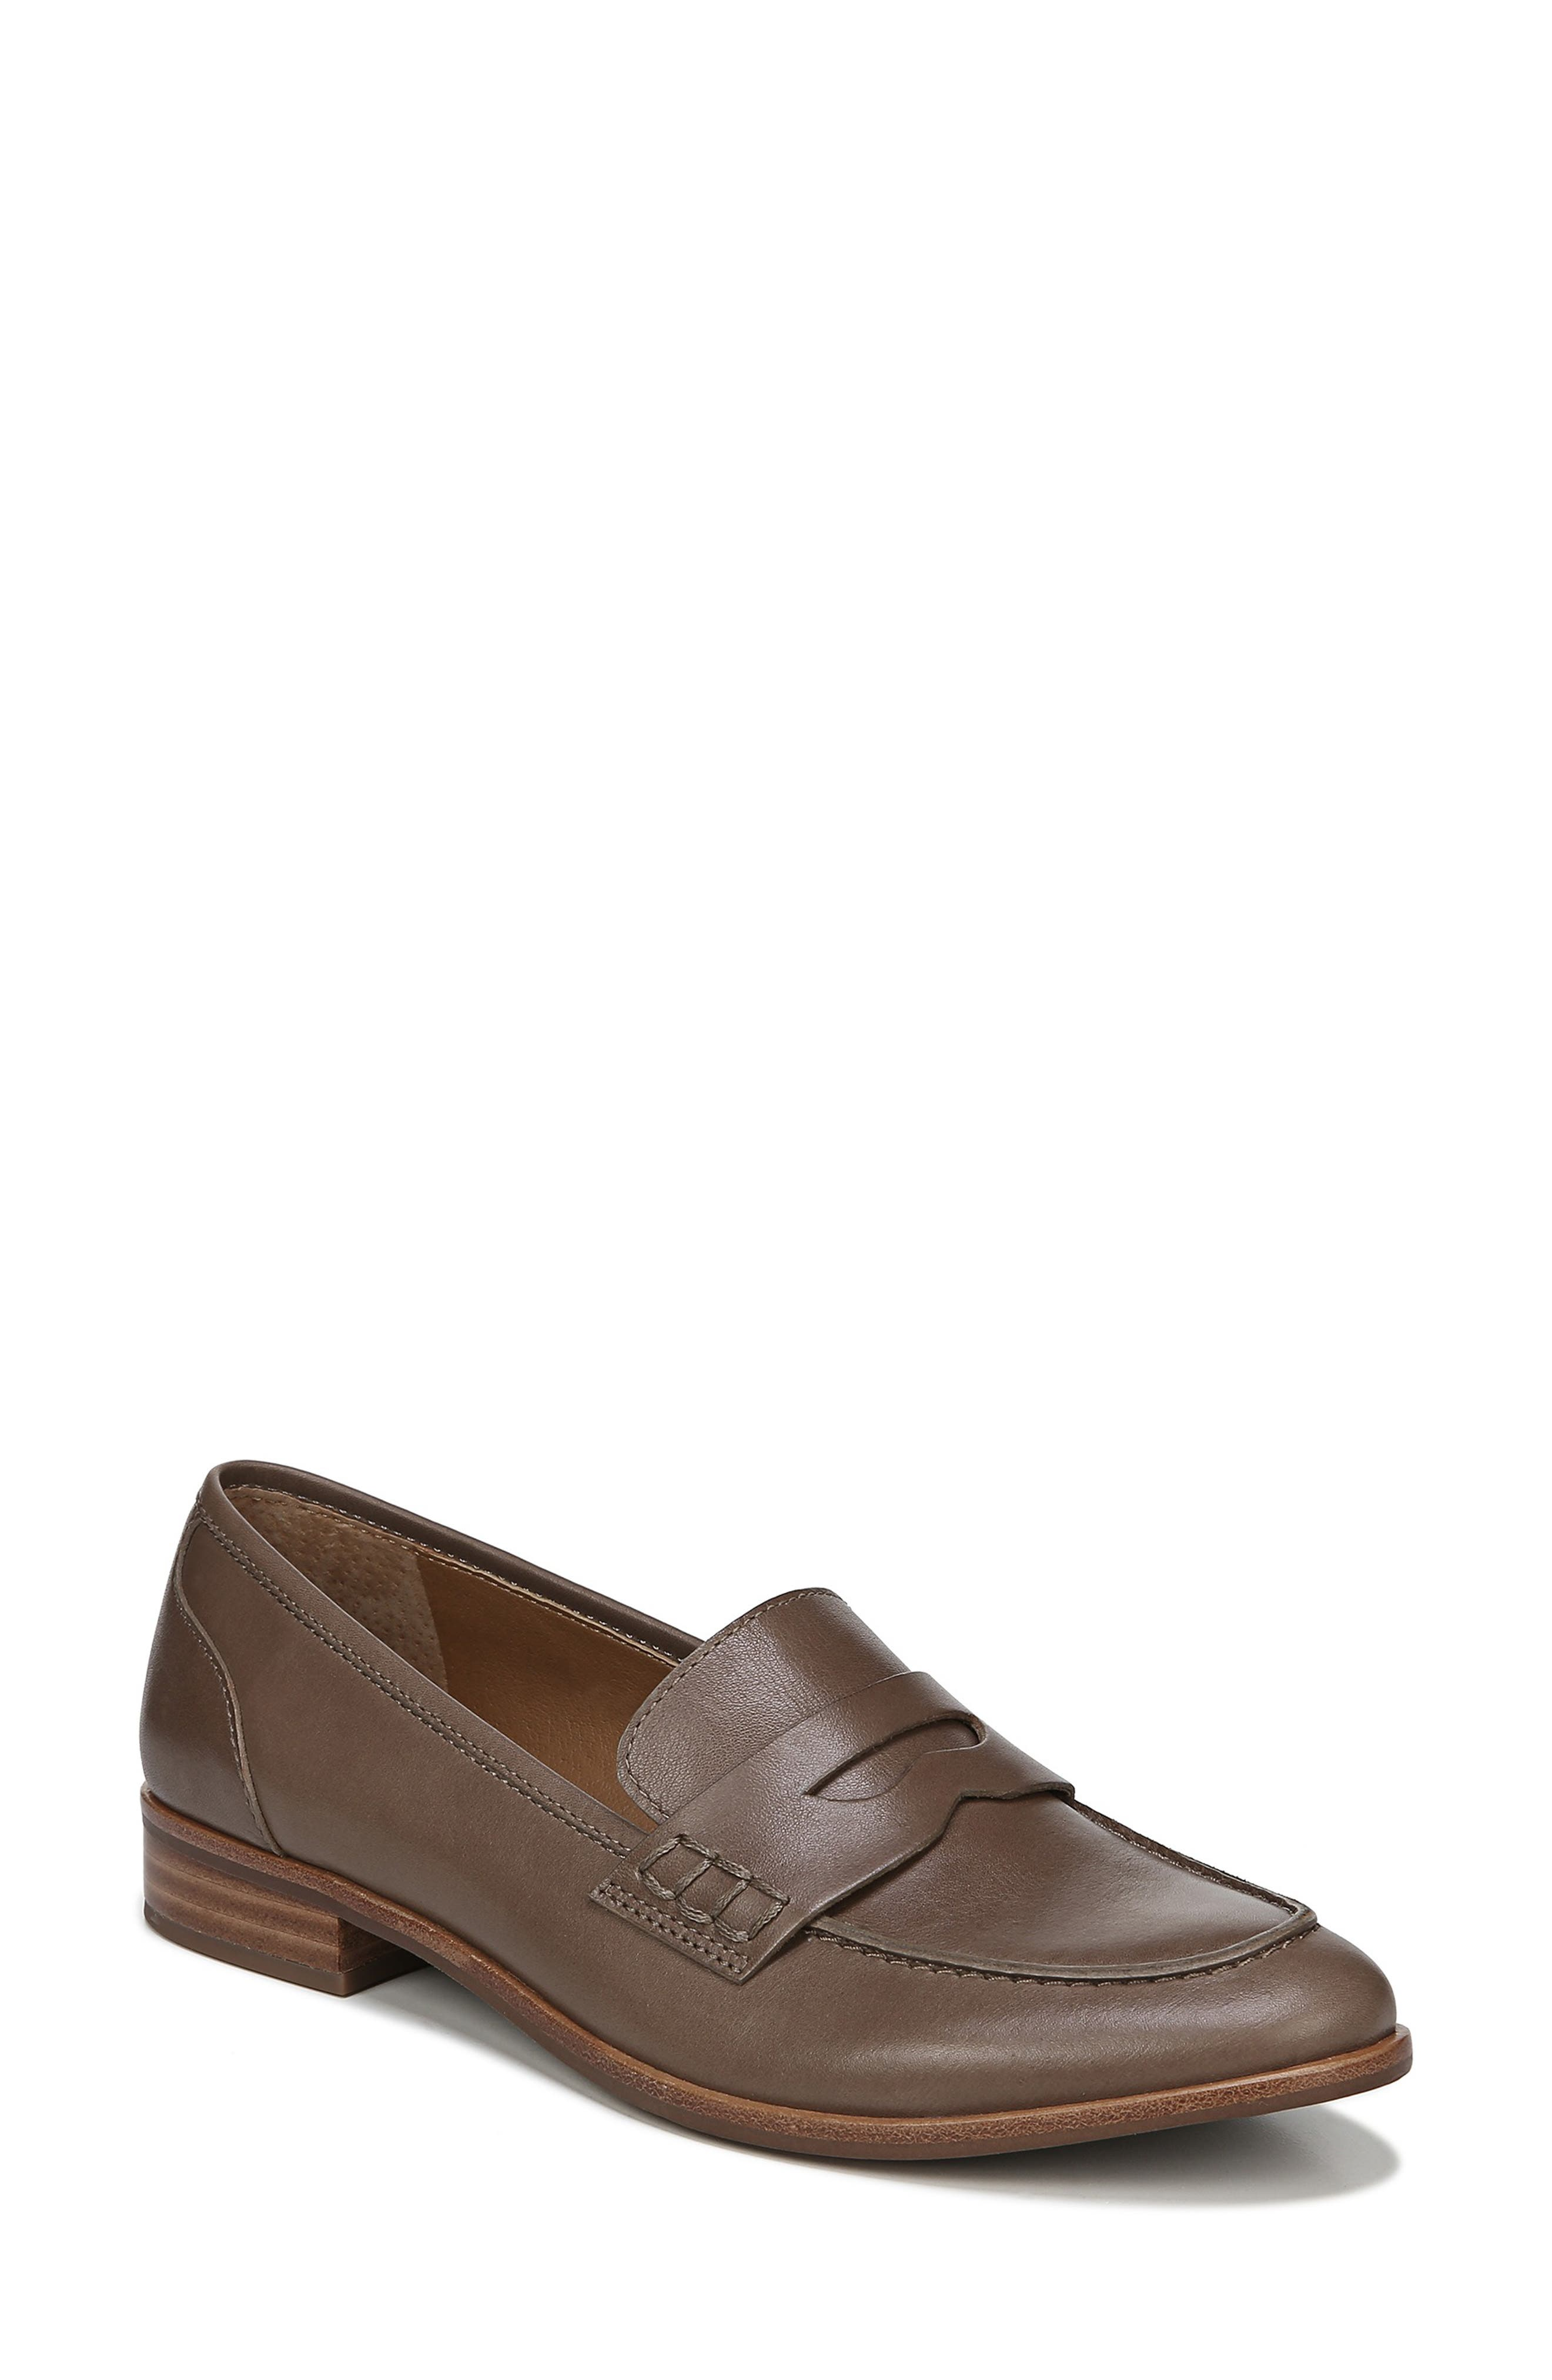 SARTO BY FRANCO SARTO,                             'Jolette' Penny Loafer,                             Main thumbnail 1, color,                             DARK PUTTY LEATHER